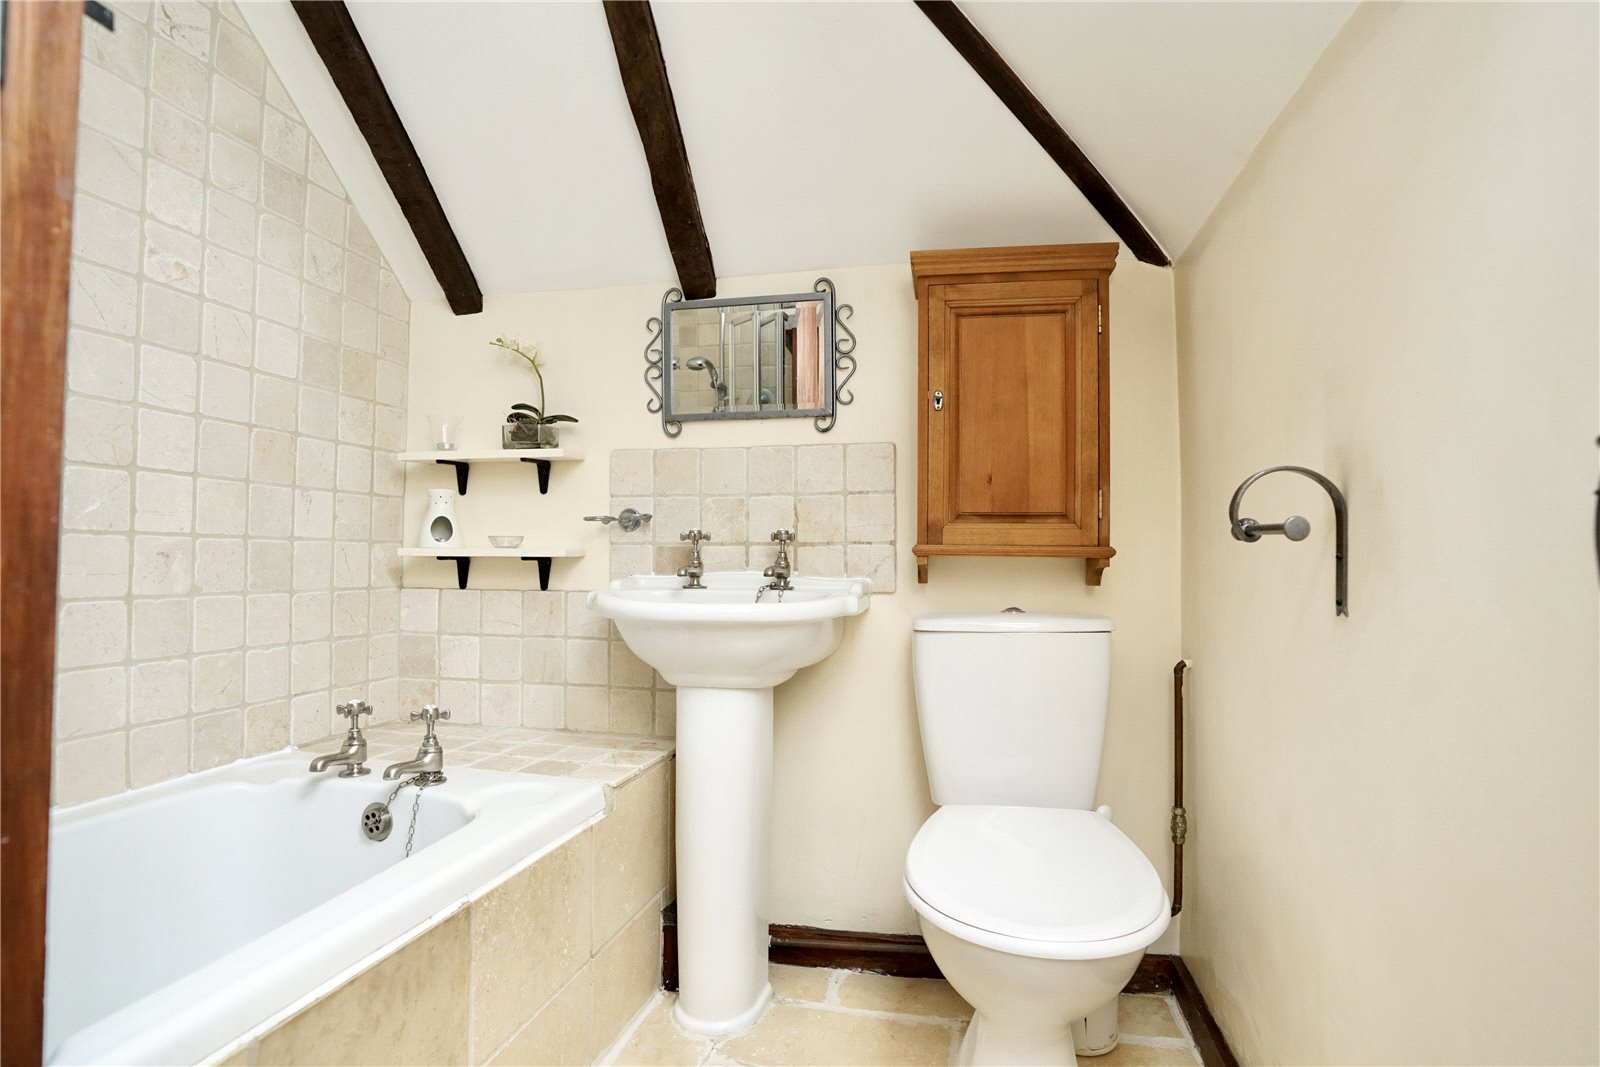 5 bed house for sale in Colmworth Road, Little Staughton  - Property Image 15